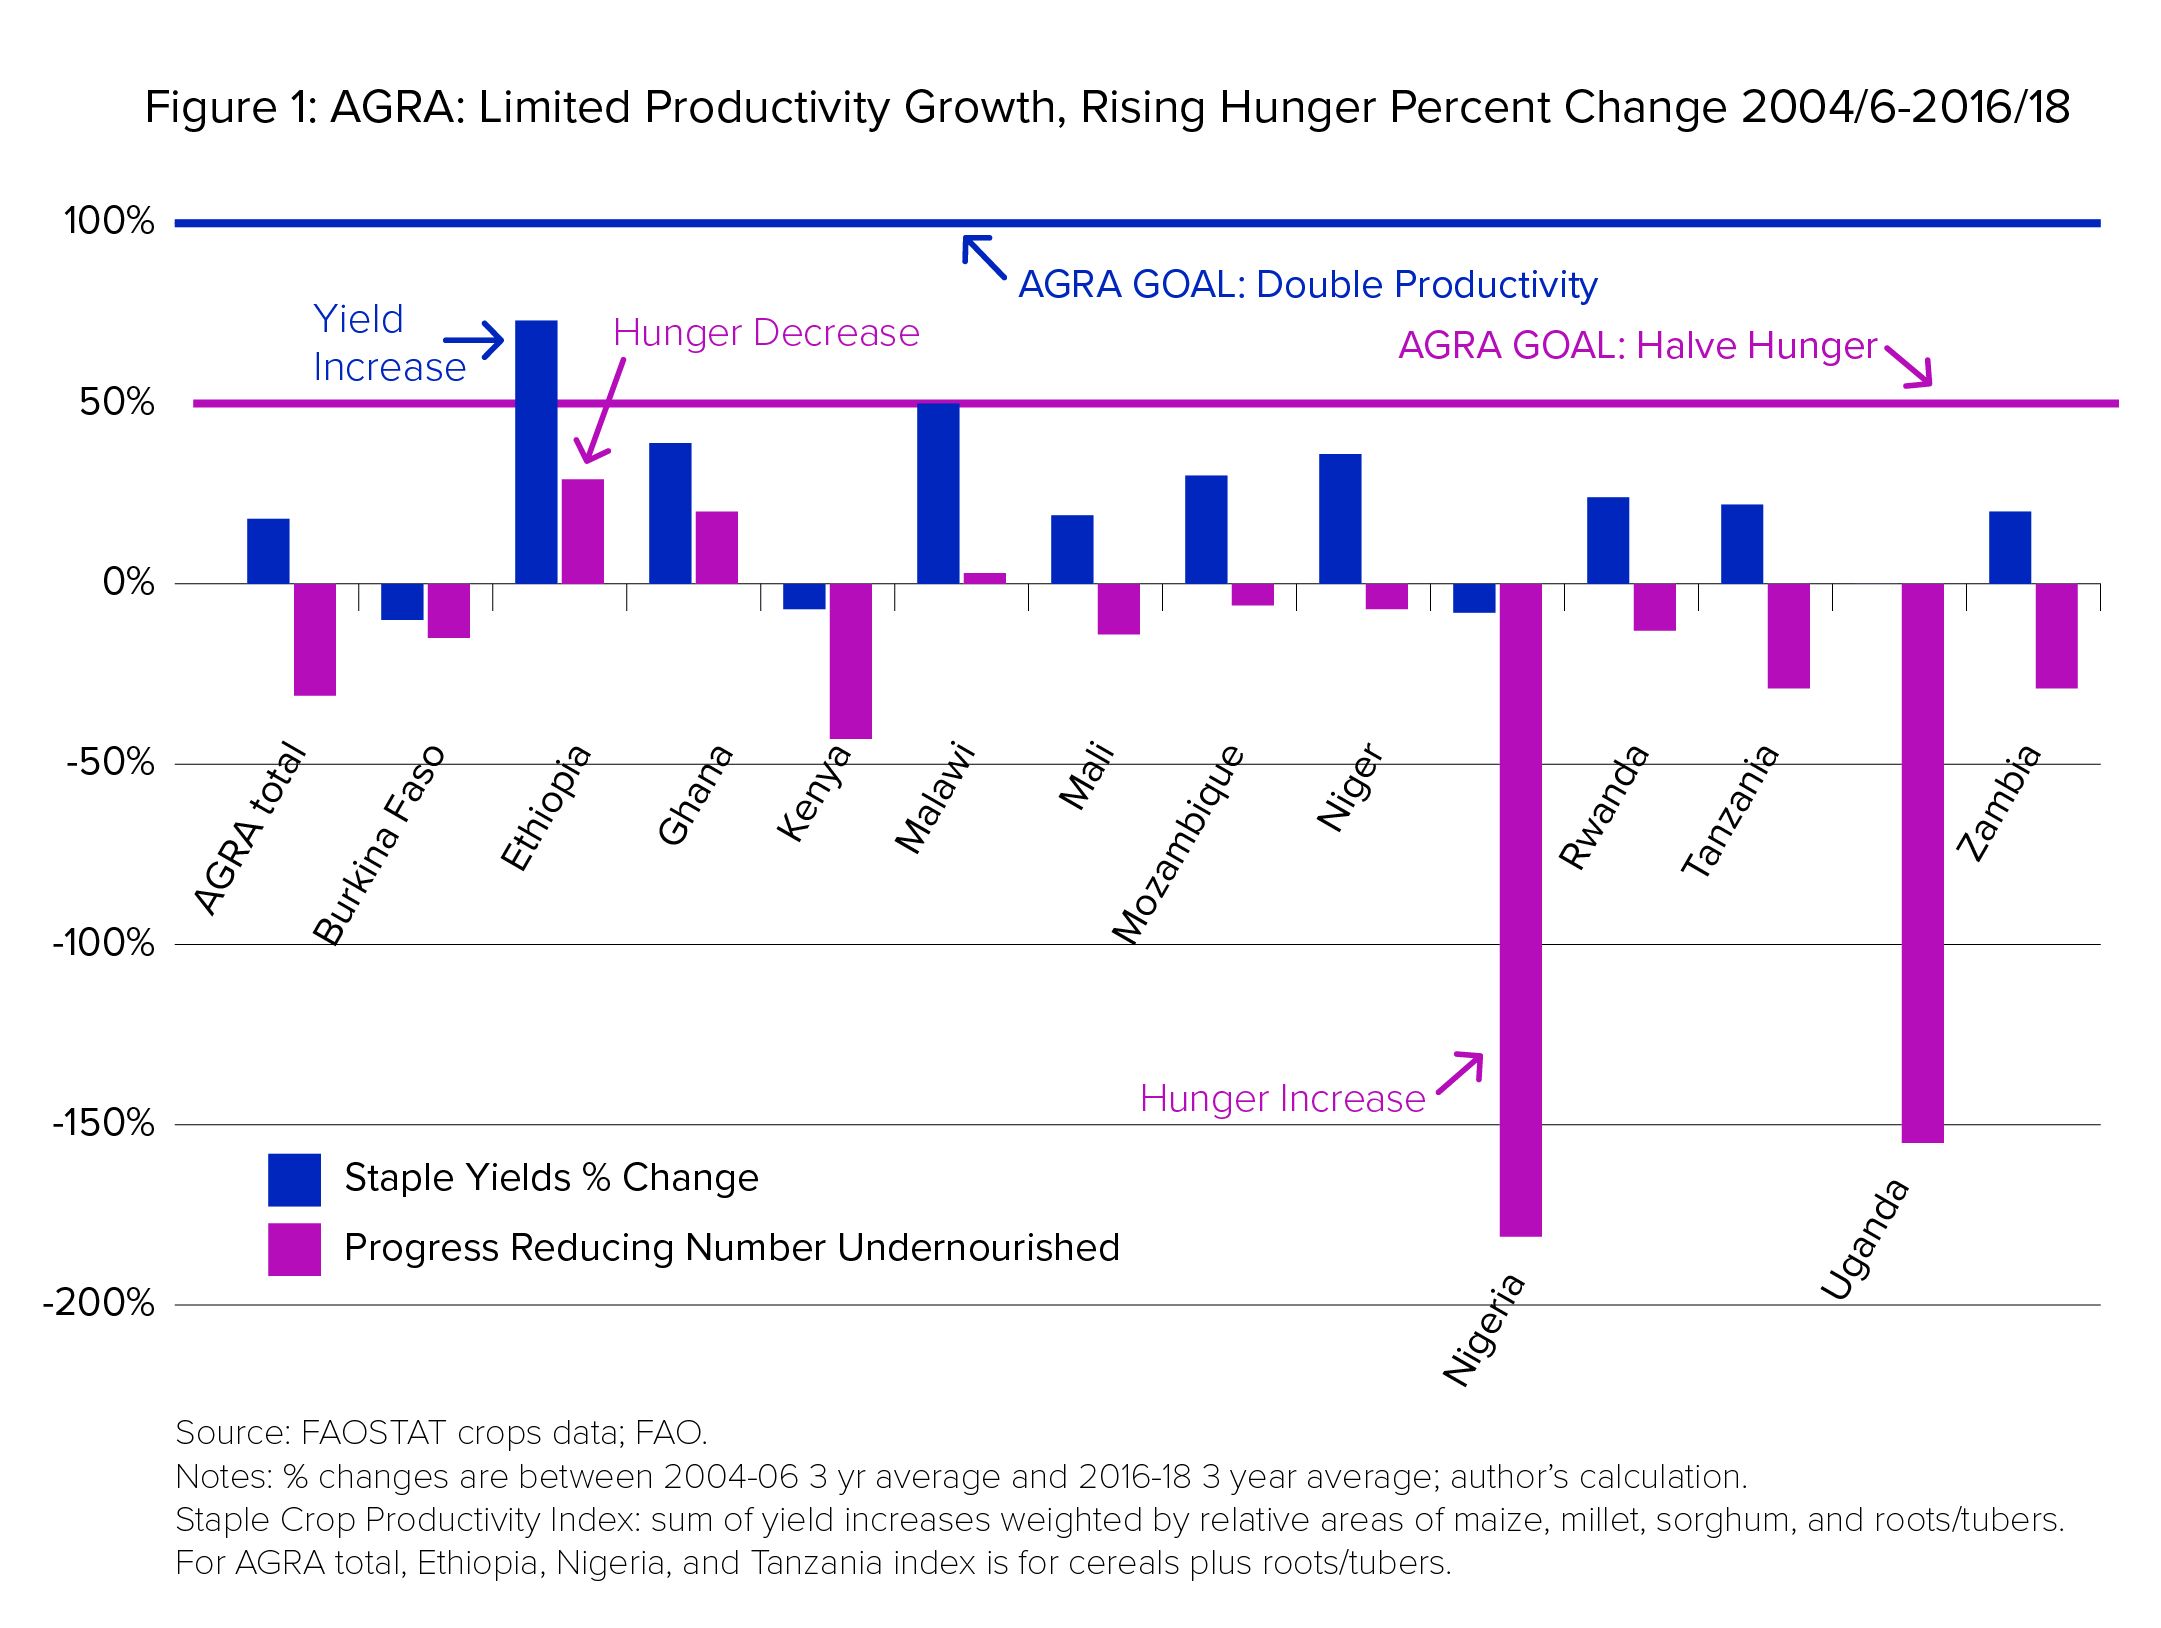 Figure 1: AGRA: Limited Productivity Growth, Rising Hunger Percent Change 2004/6-2016/18